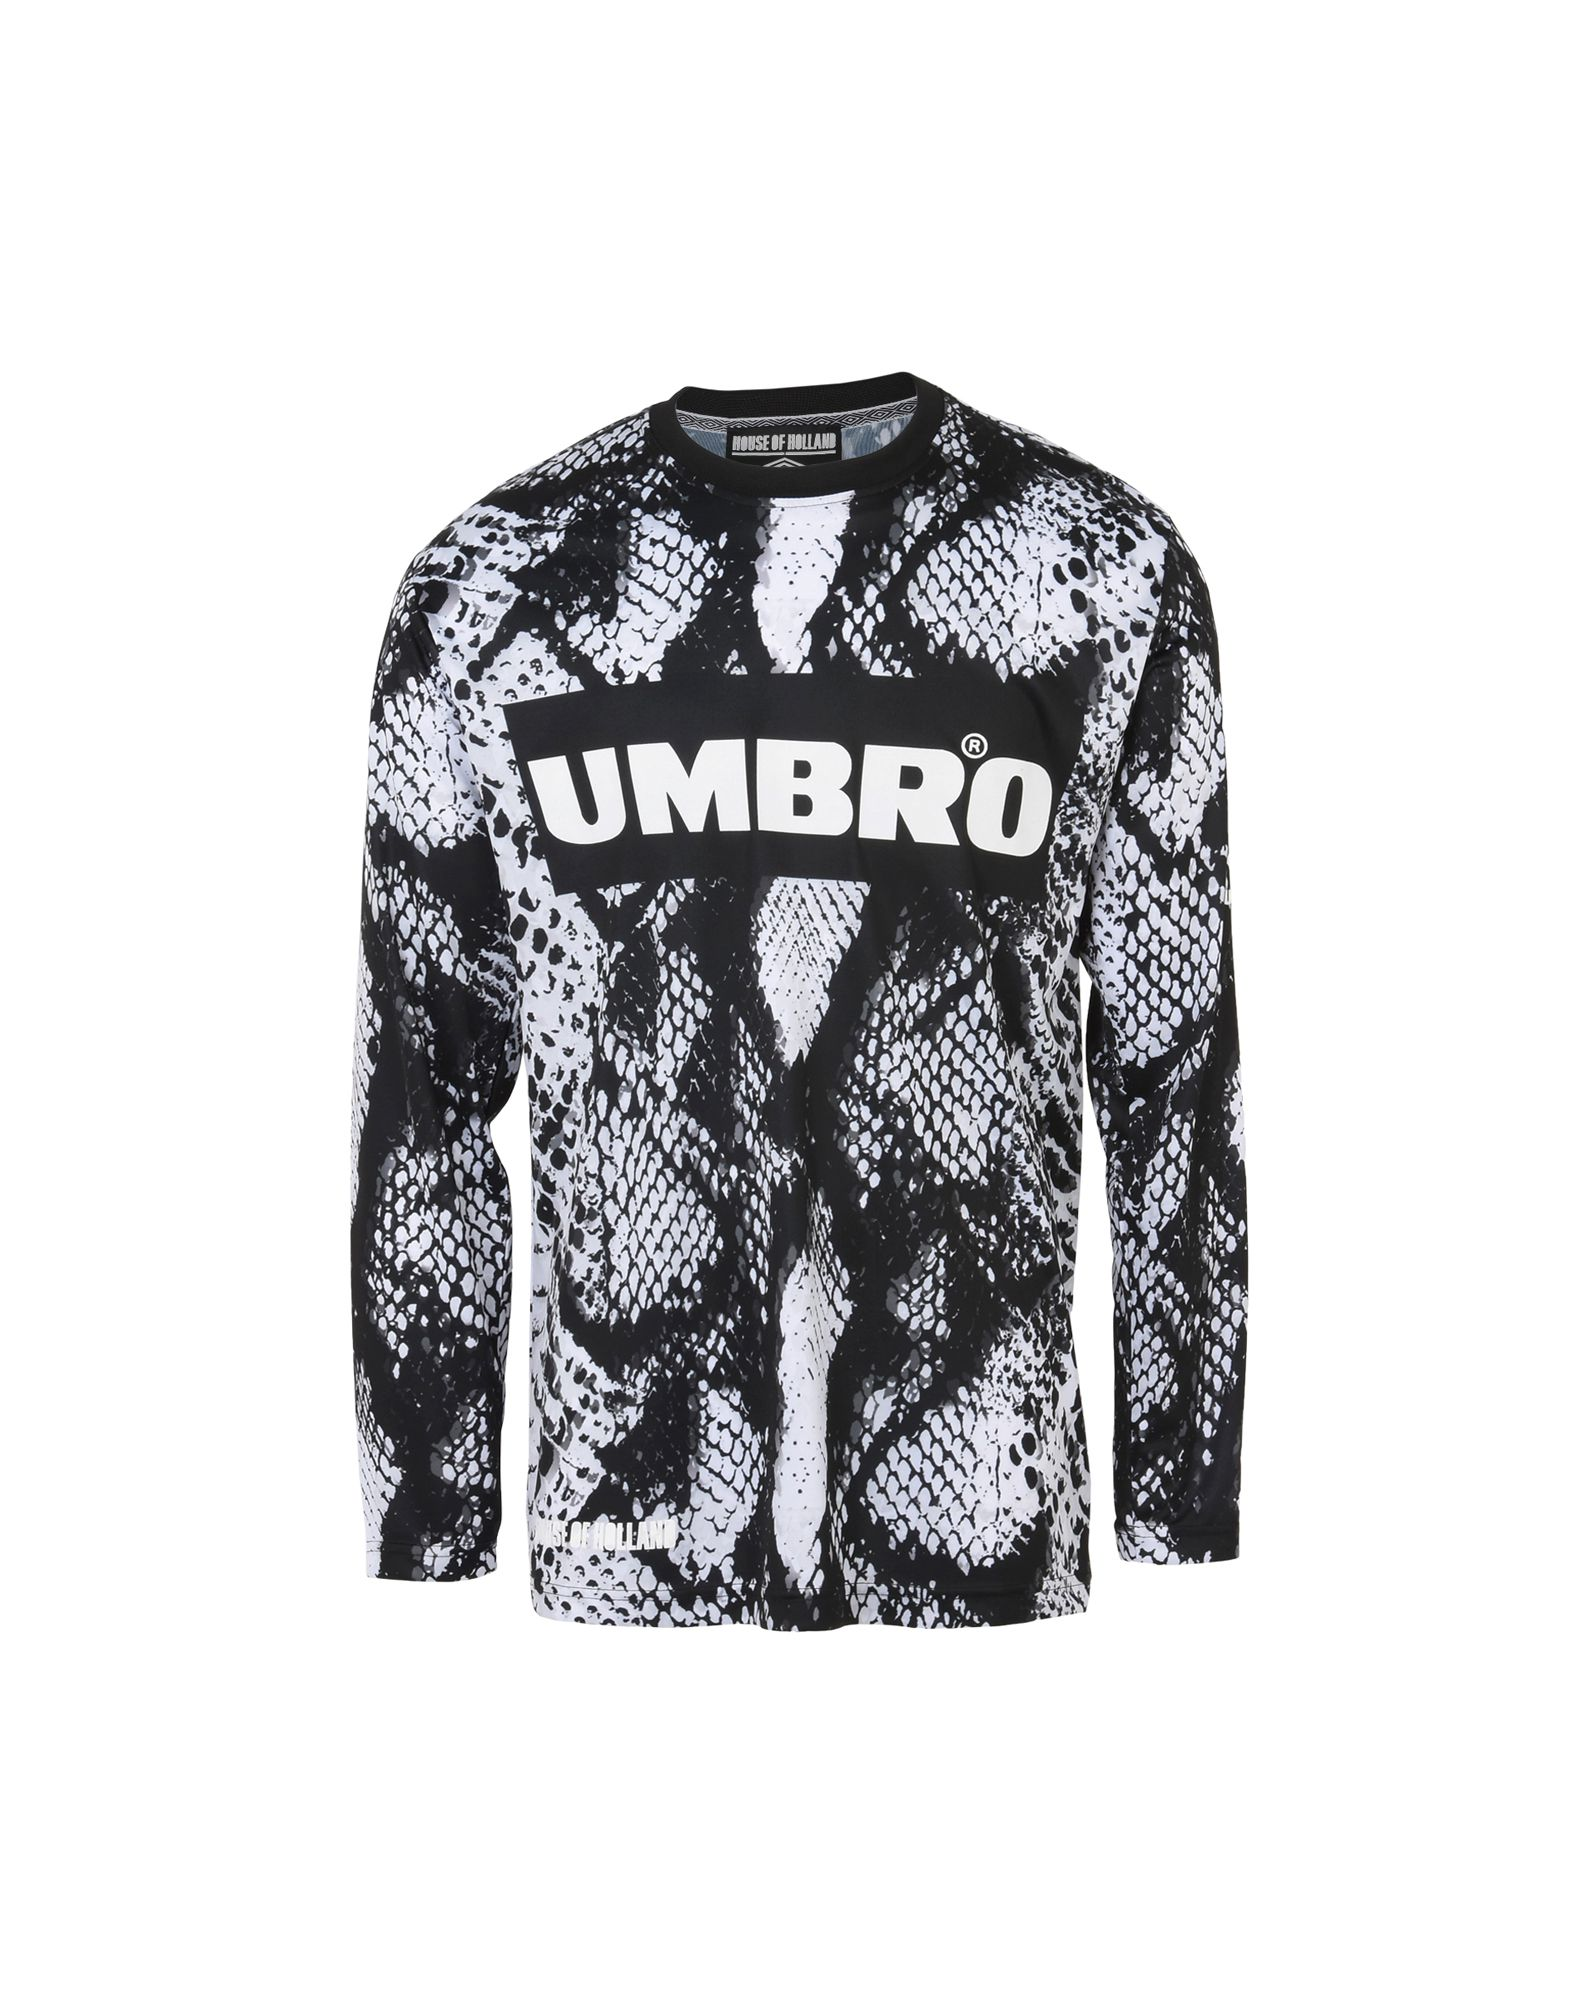 Фото UMBRO x HOUSE OF HOLLAND Футболка umbro x house of holland толстовка